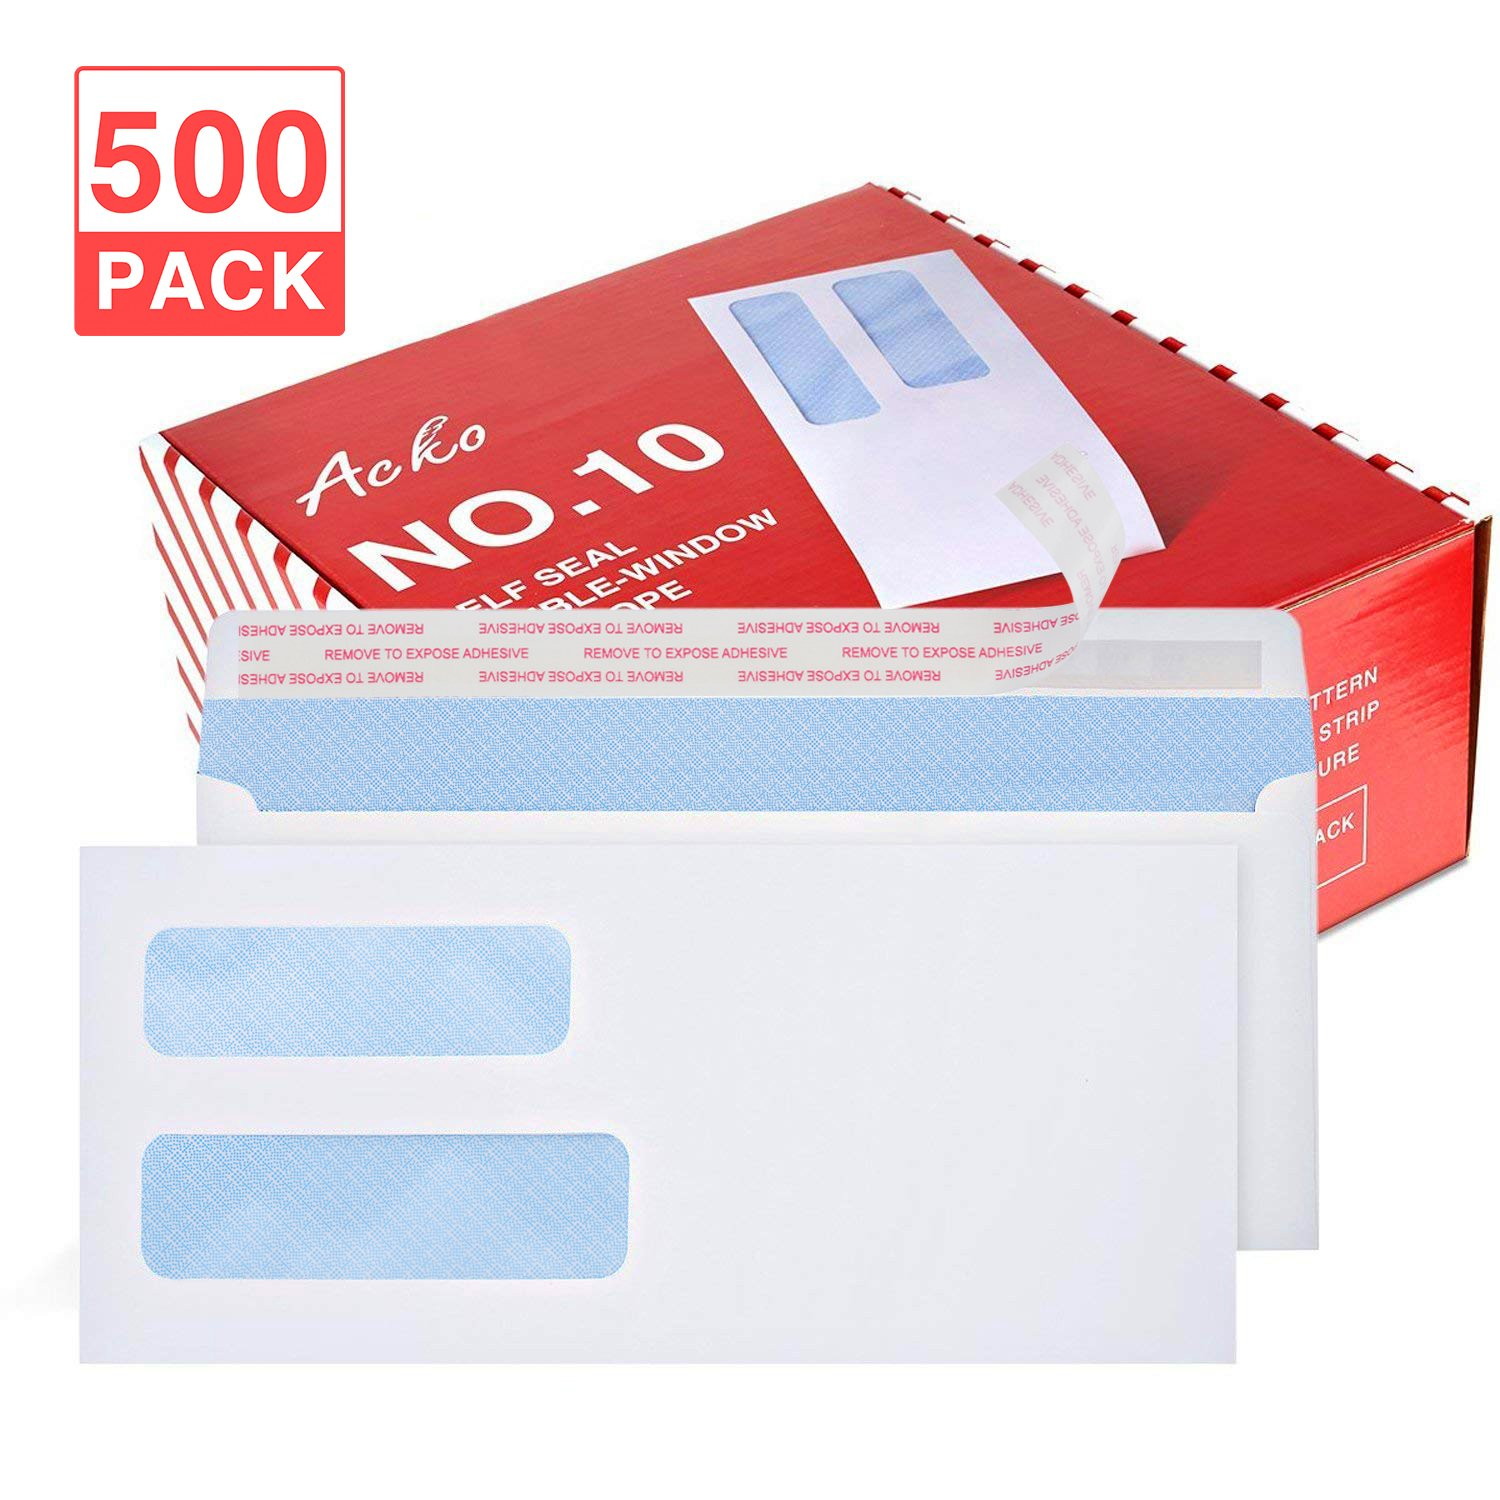 Acko #10 500Pack Double Window Envelopes Quick-Seal Closure Envelopes 4 1/8 x 9 1/2,Security Tint Pattern Designed for Home Office Secure Mailing,Letters and Invoices - White Envelopes 500 Count